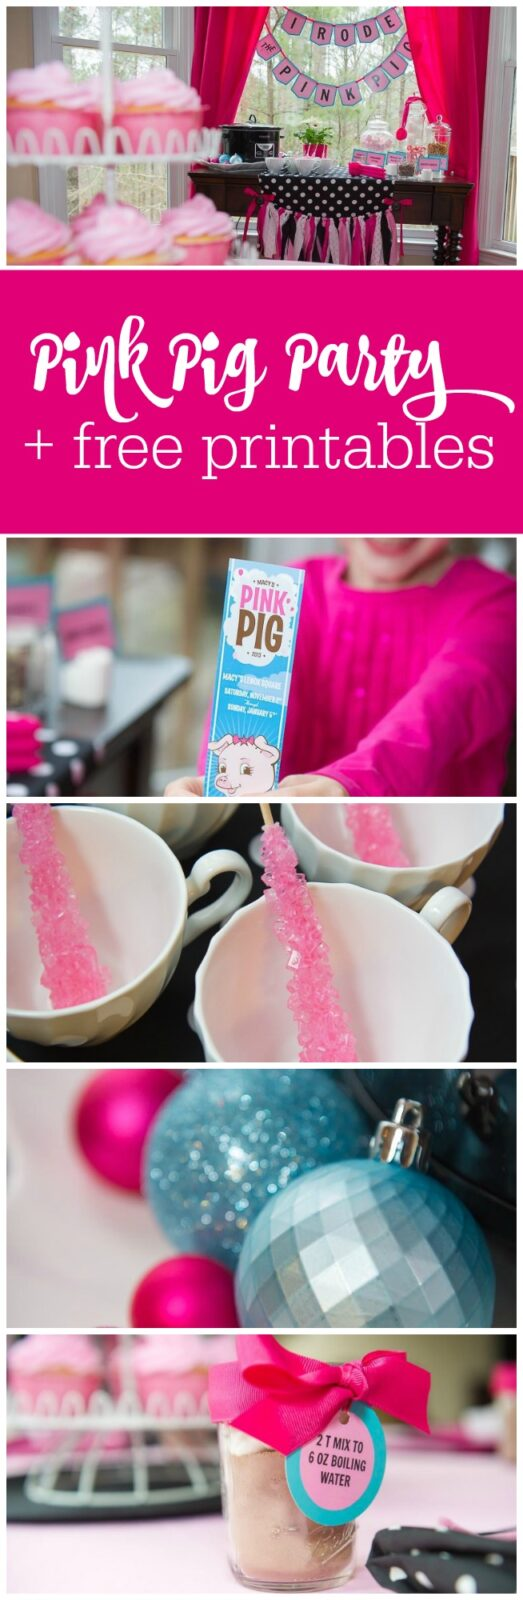 Pink Pig Party, hot cocoa bar and free printables by The Party Teacher